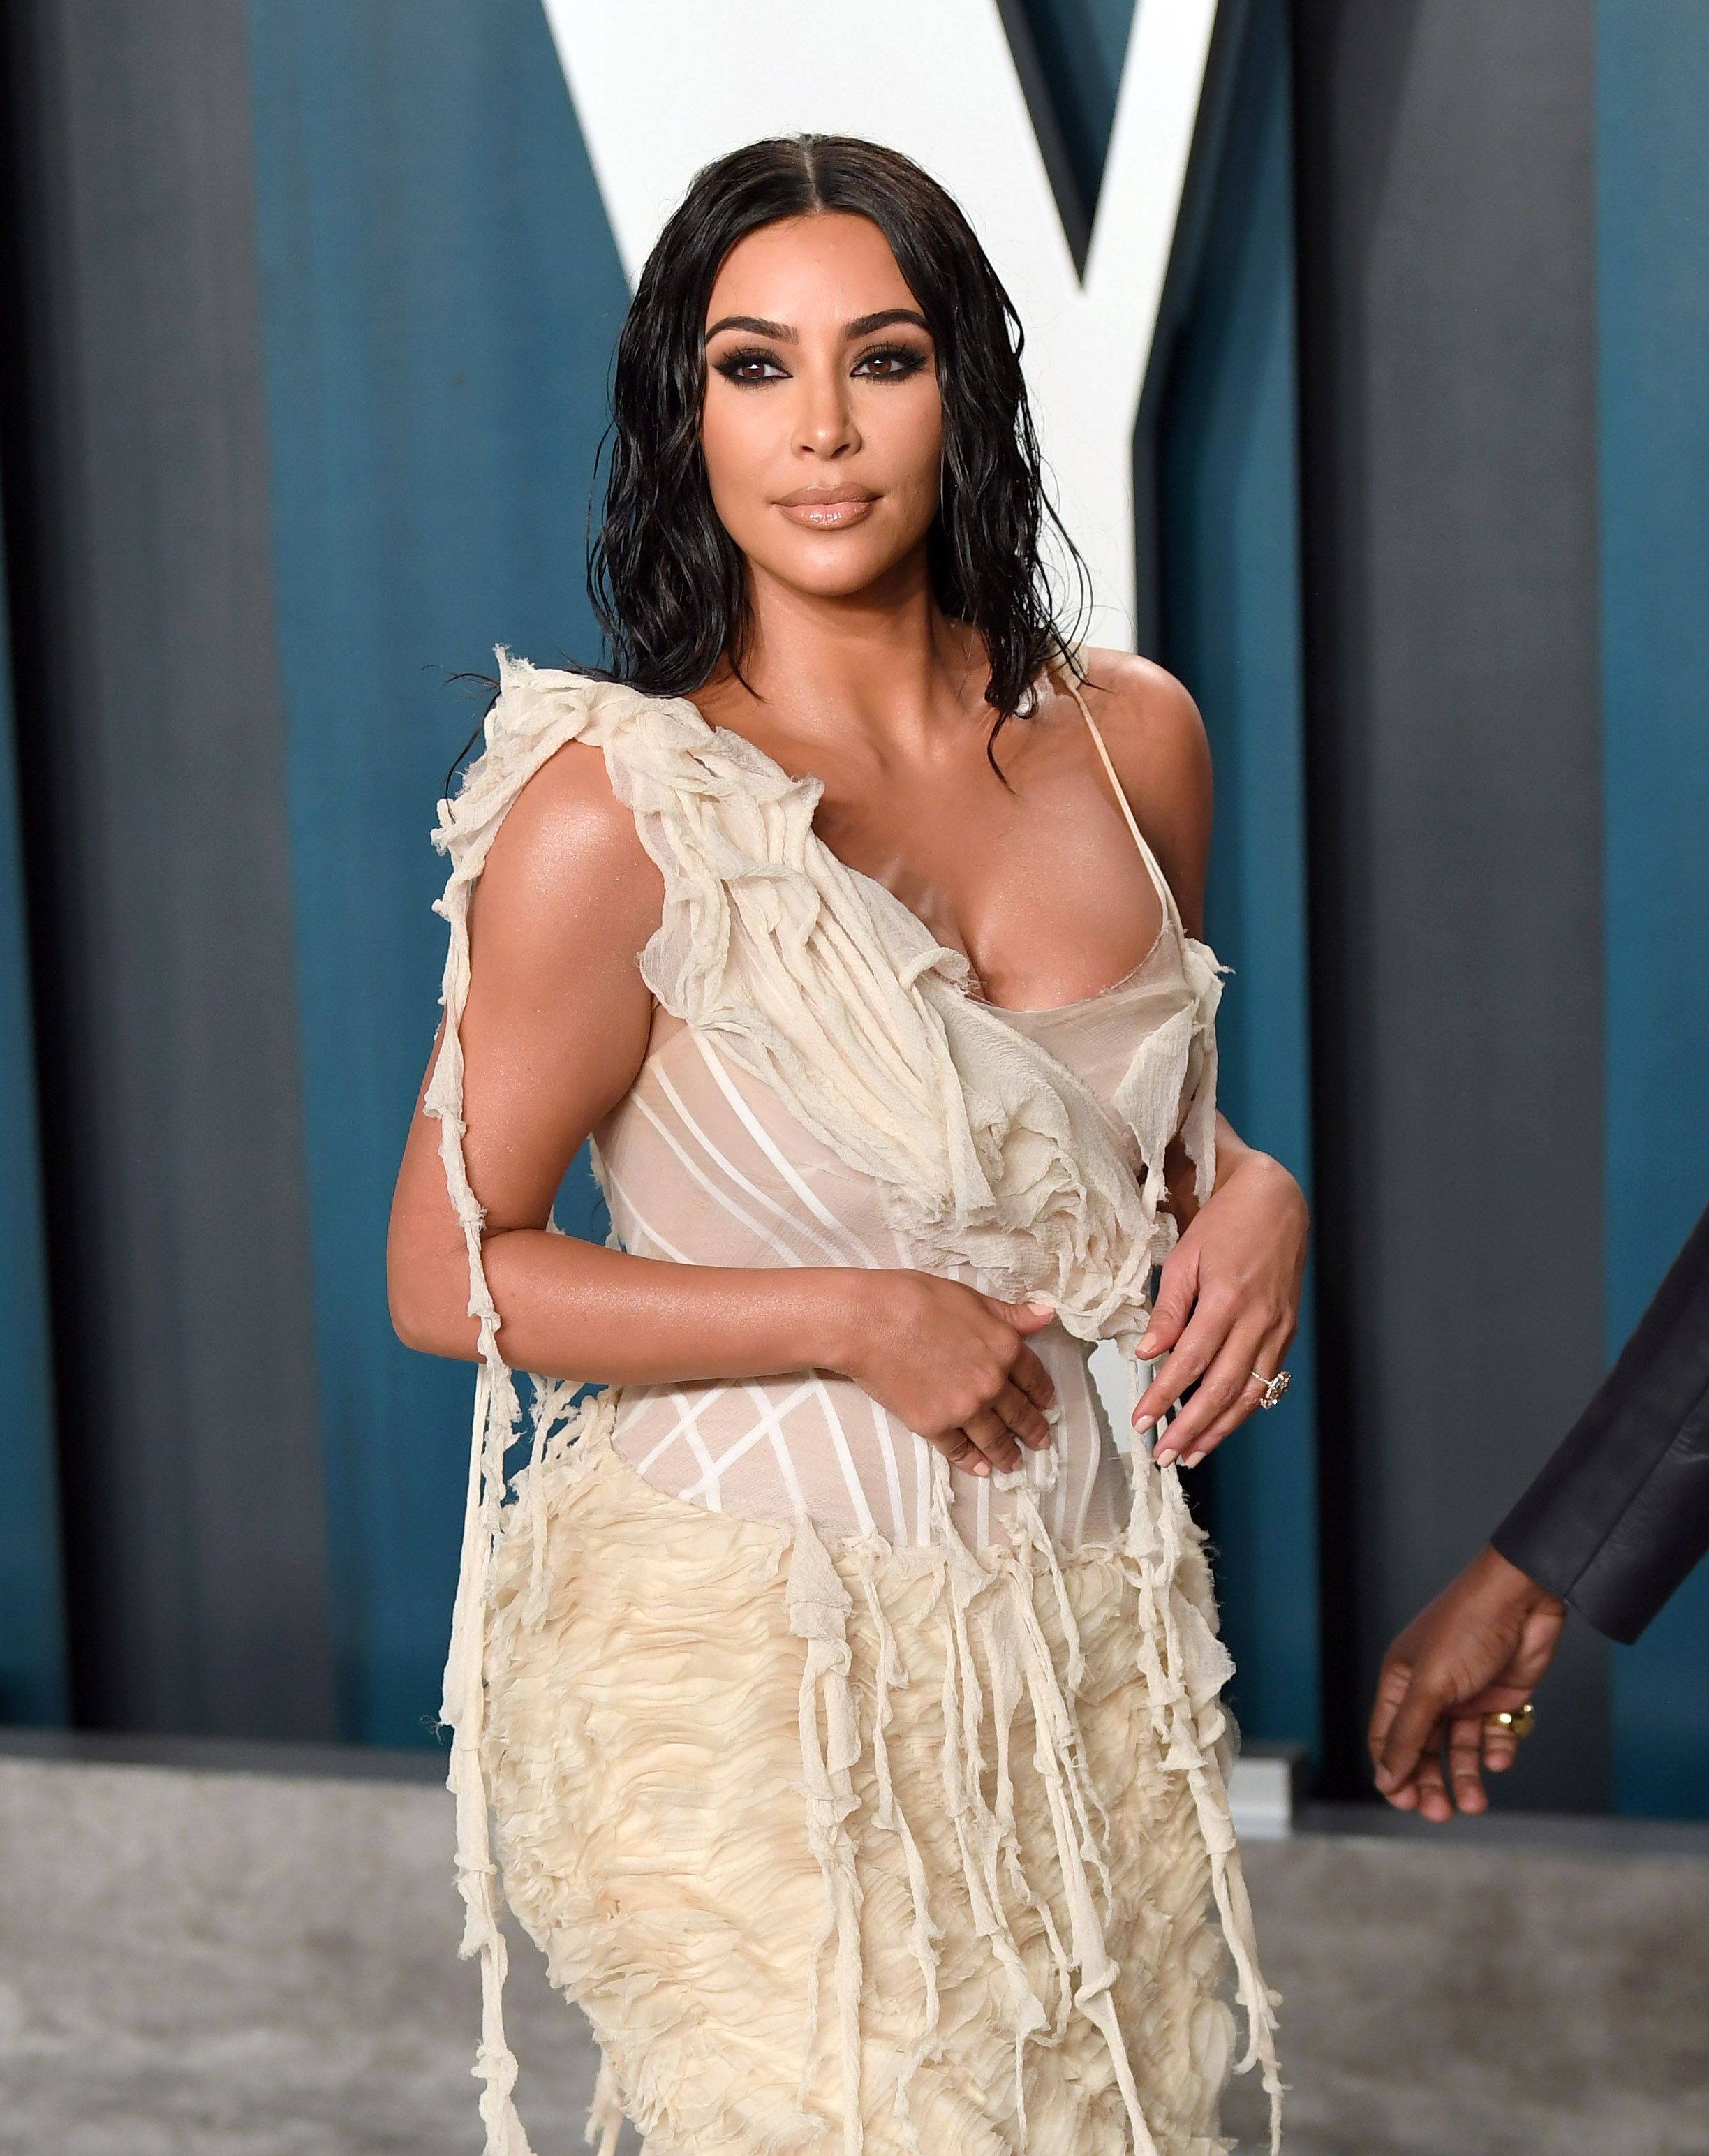 Kim Kardashian West Joins Other Celebrities in Demanding Justice for George Floyd